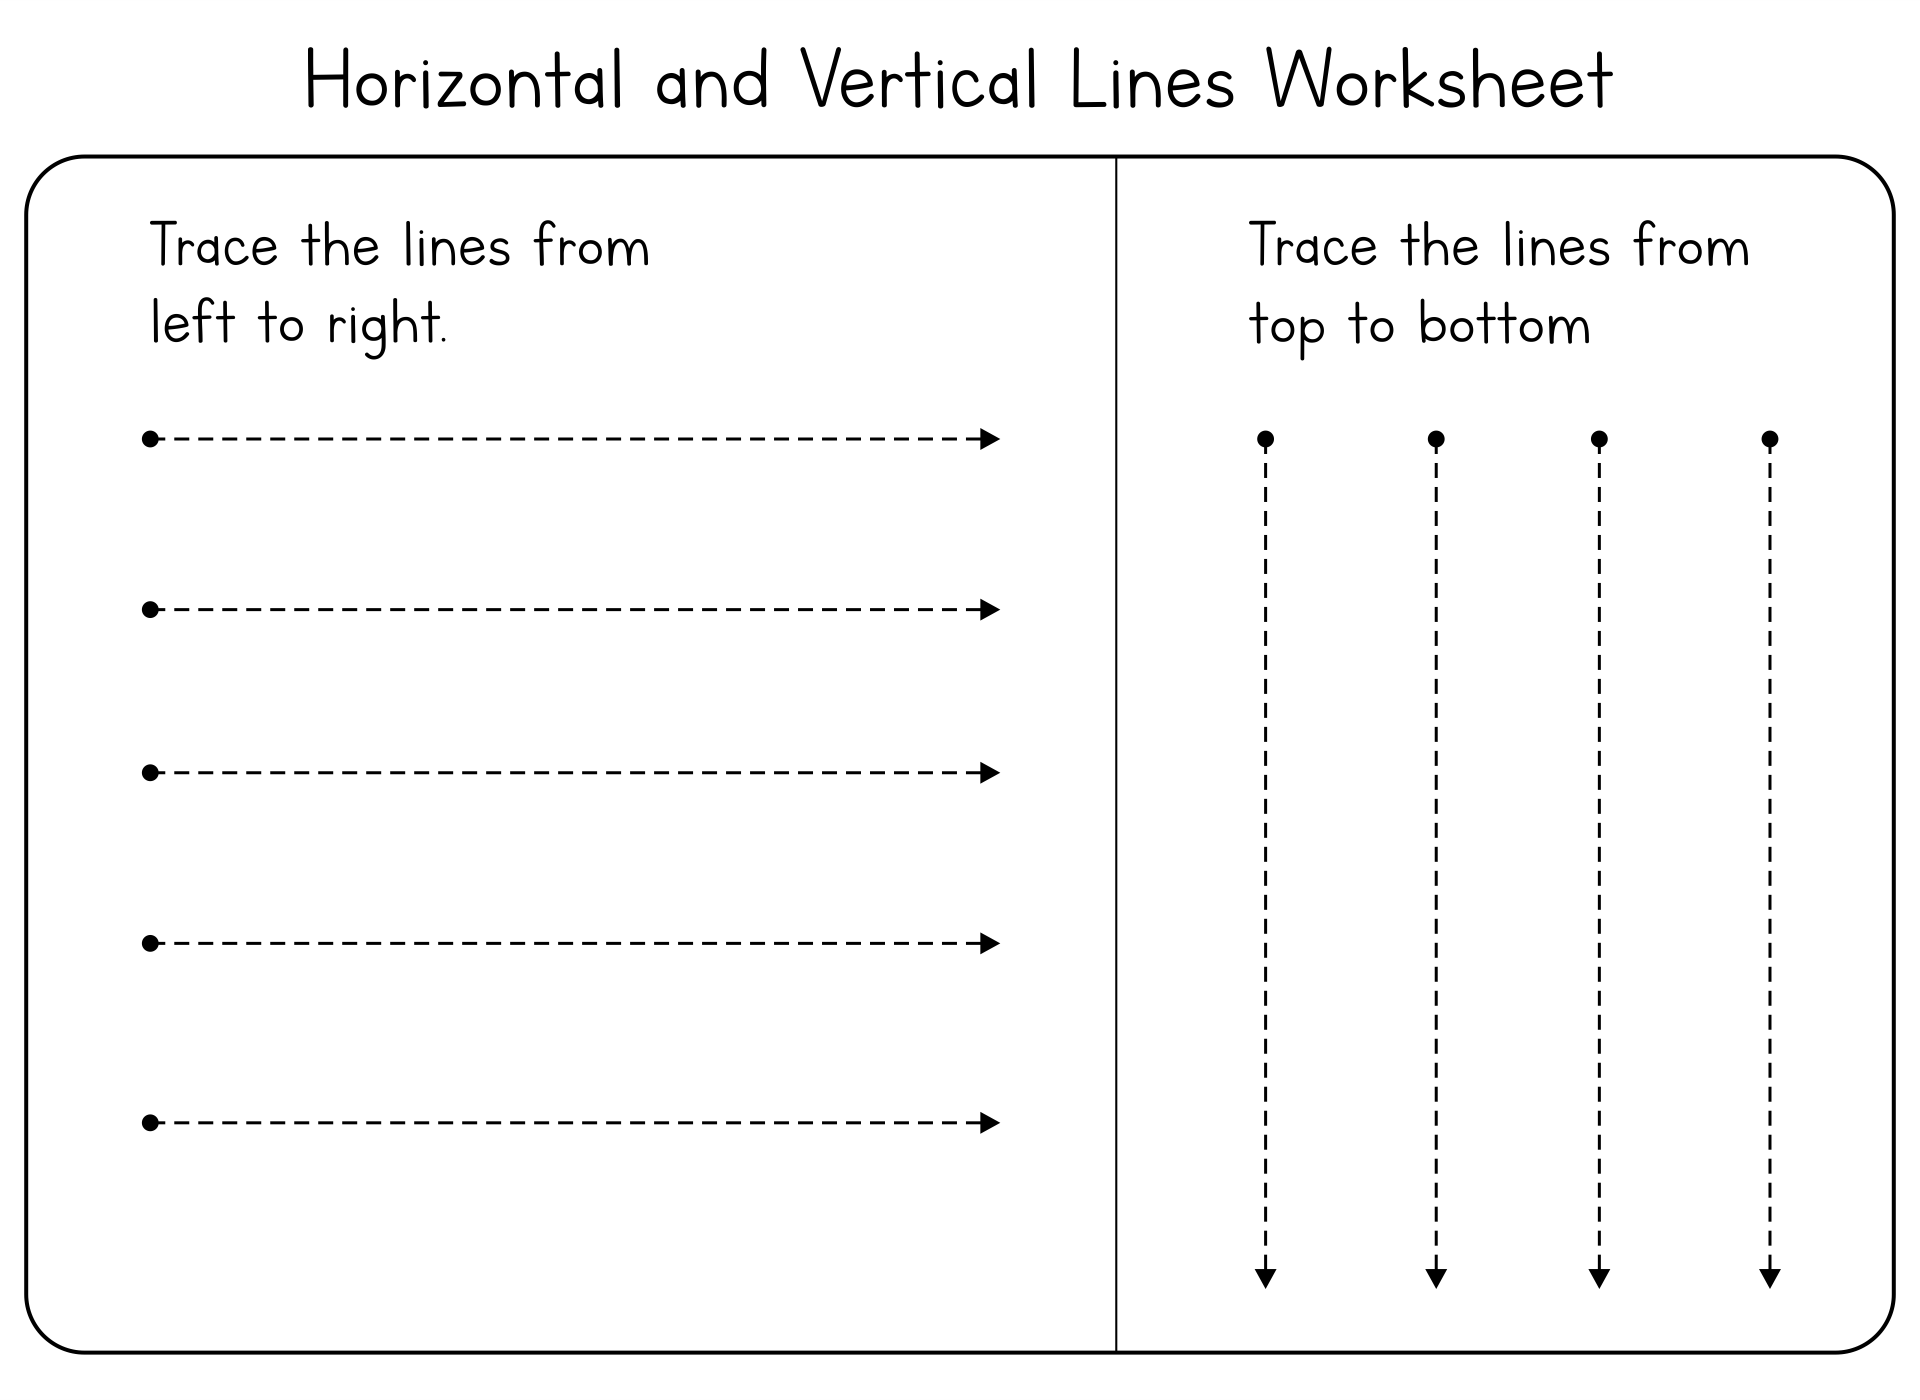 7 Best Images of Line Tracing Worksheets Free Printable ...